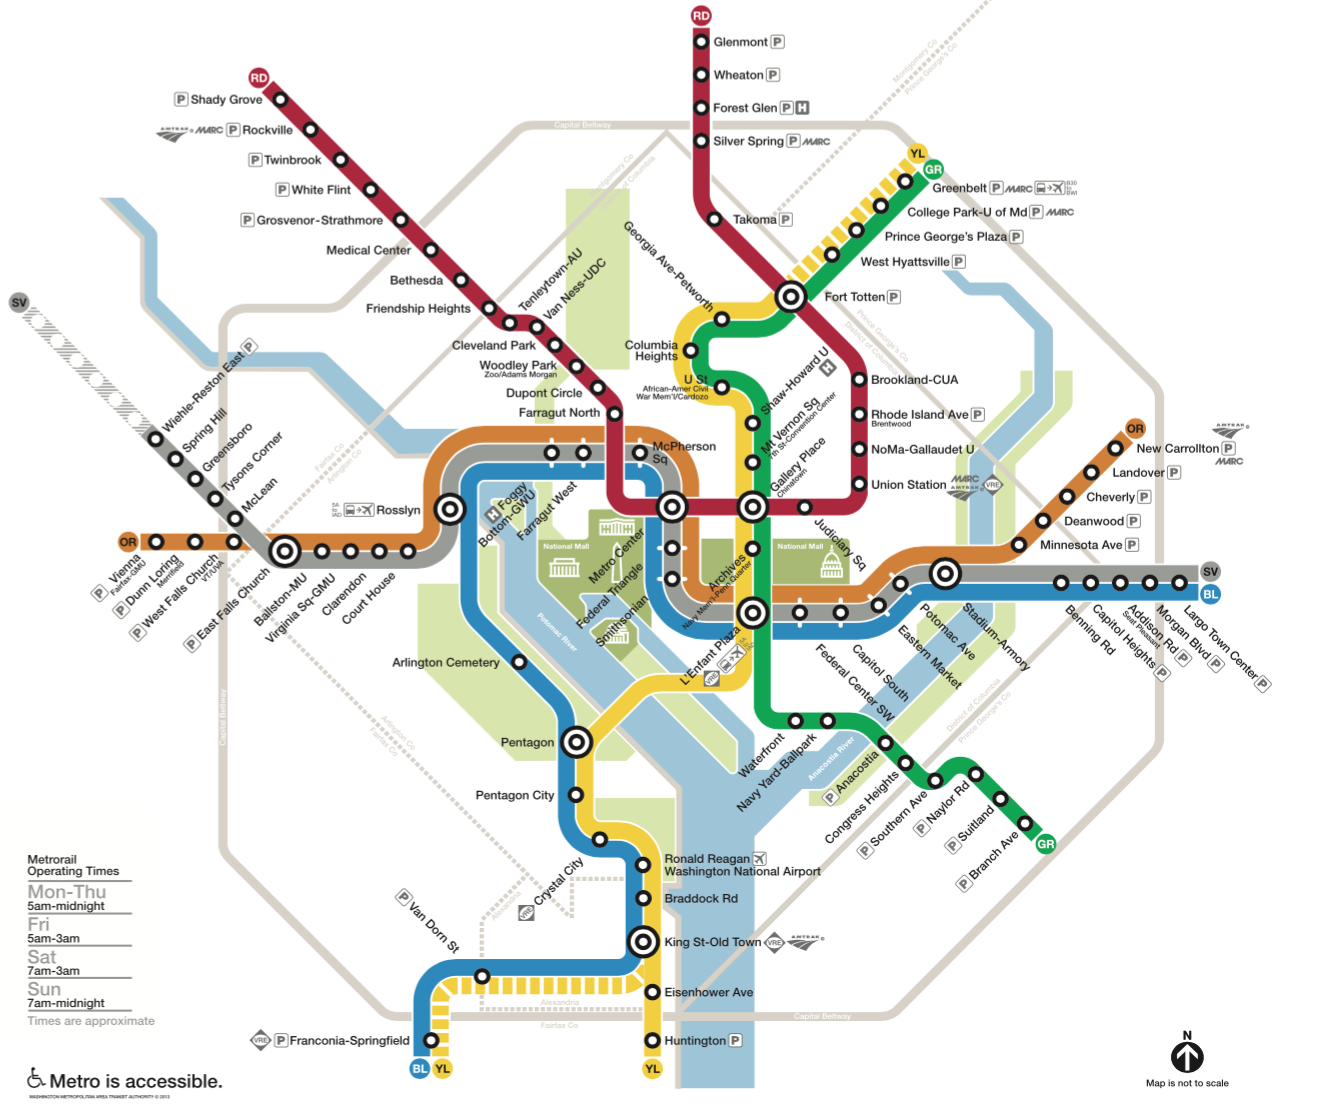 If you're relying on WMATA's metro, familiarize yourself with the map. In particular, note the triangle created by the Mount Vernon / Convention Center stop ...